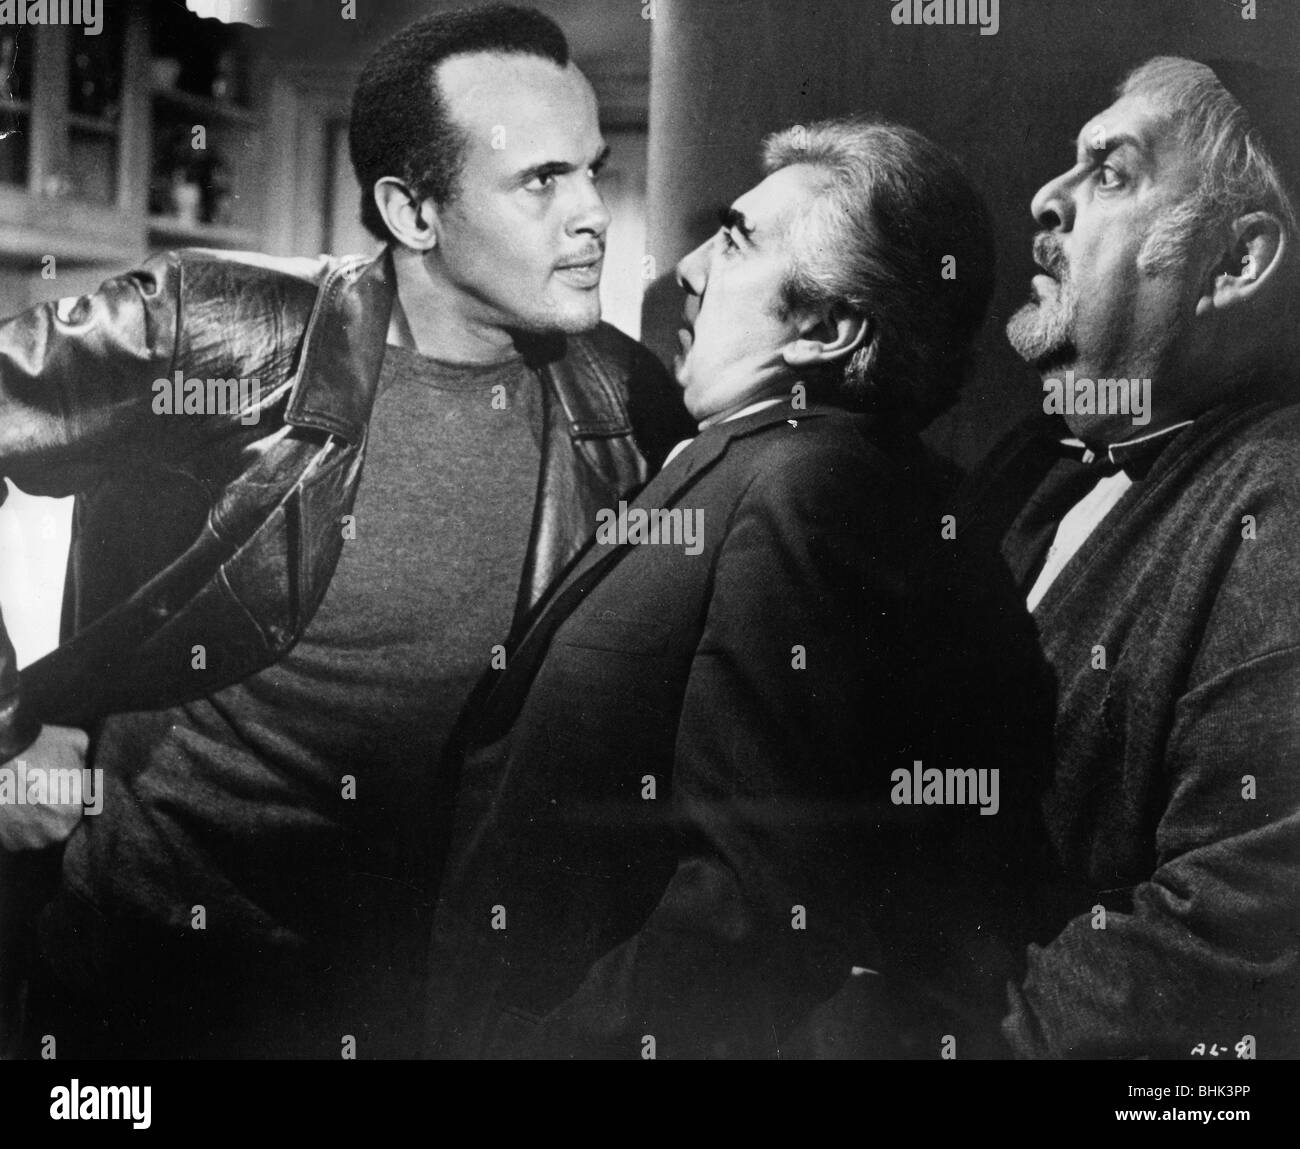 Harry Belafonte (1927- ), American actor and singer in a scene from 'The Angel Levine', 1970. - Stock Image